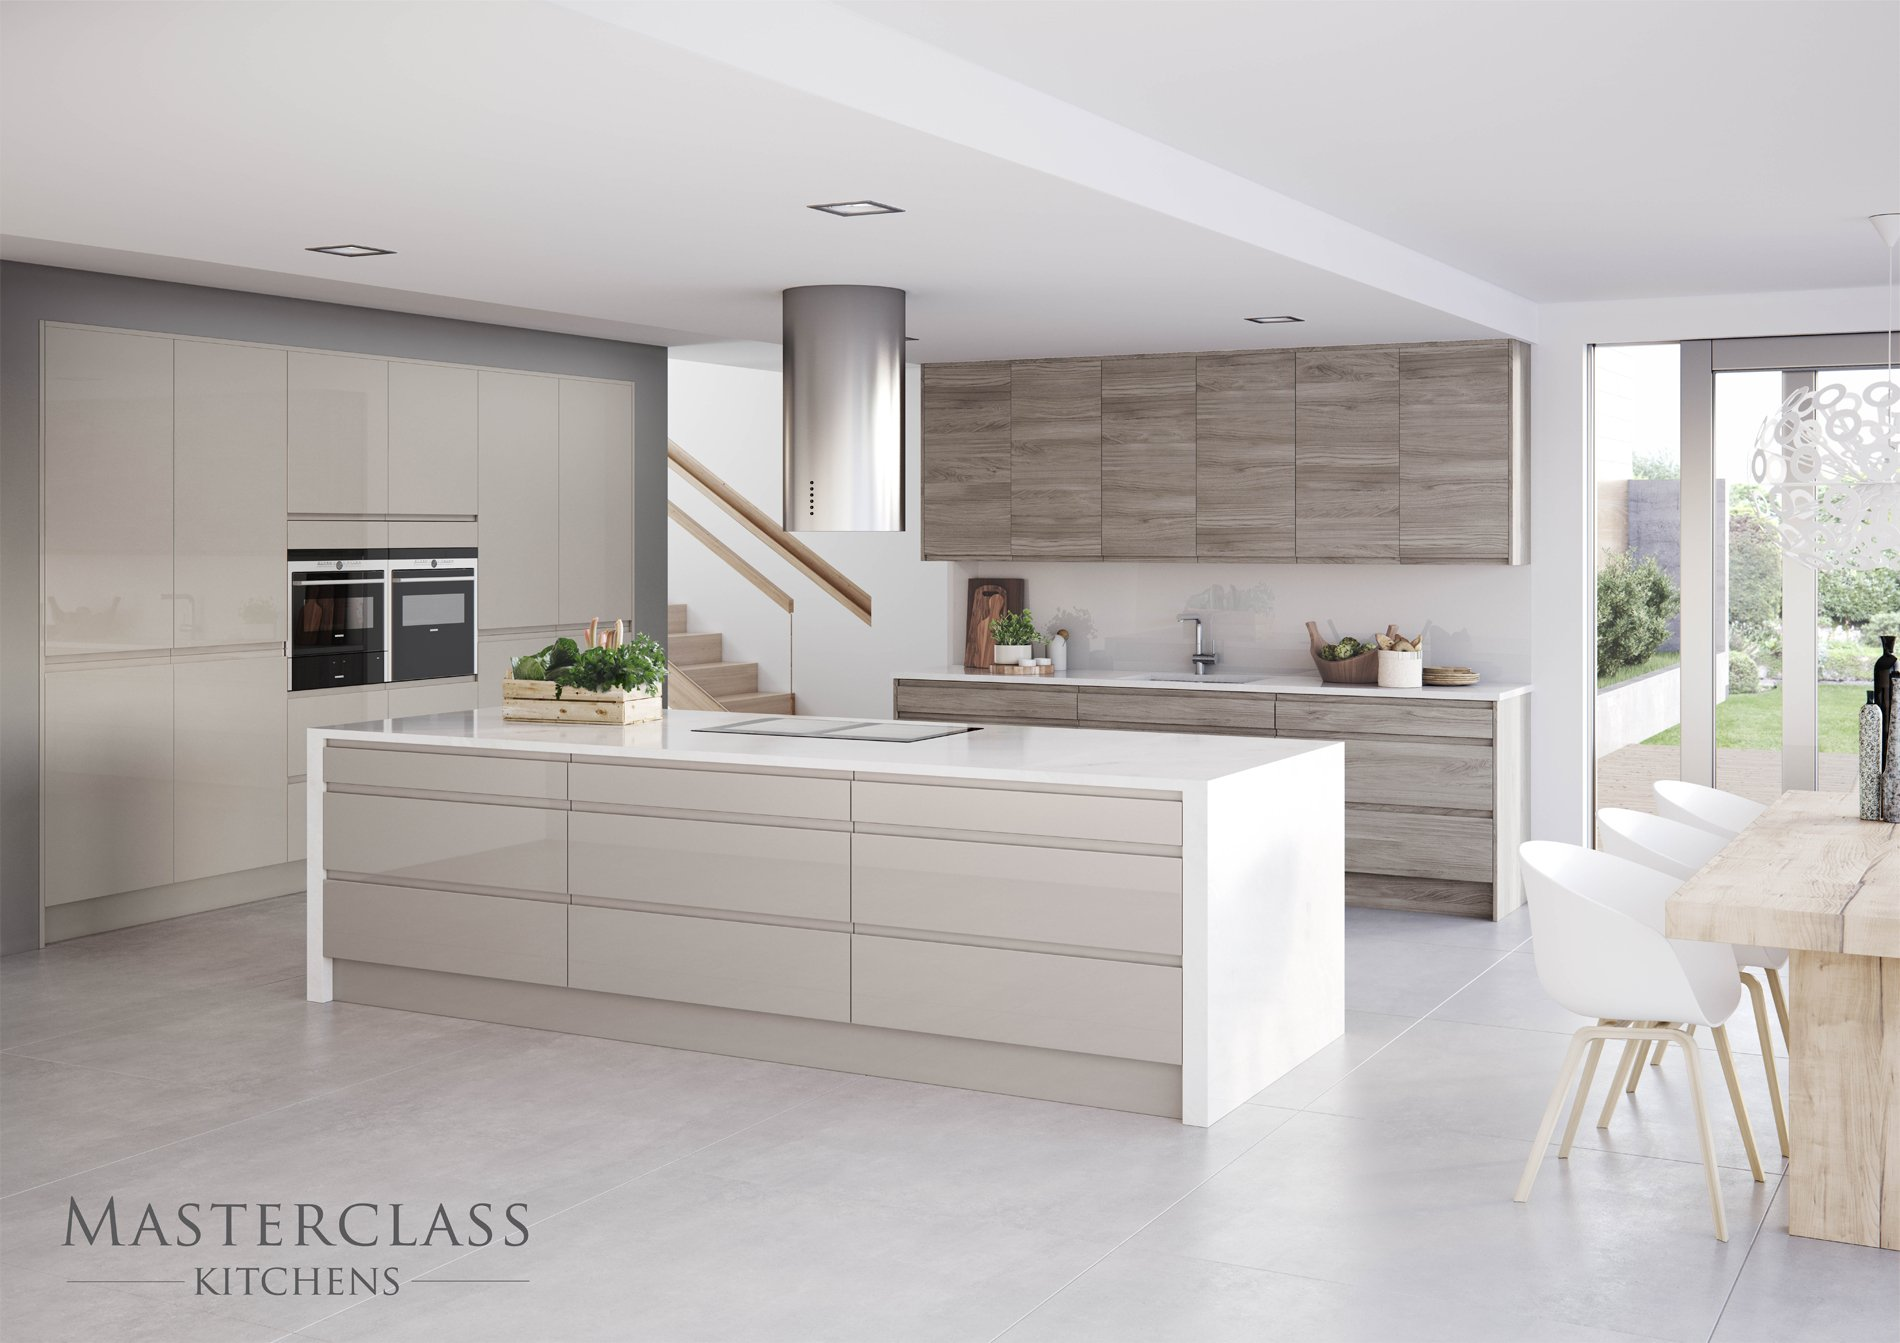 Little Cambridge Kitchen Design | Bespoke Kitchens ...